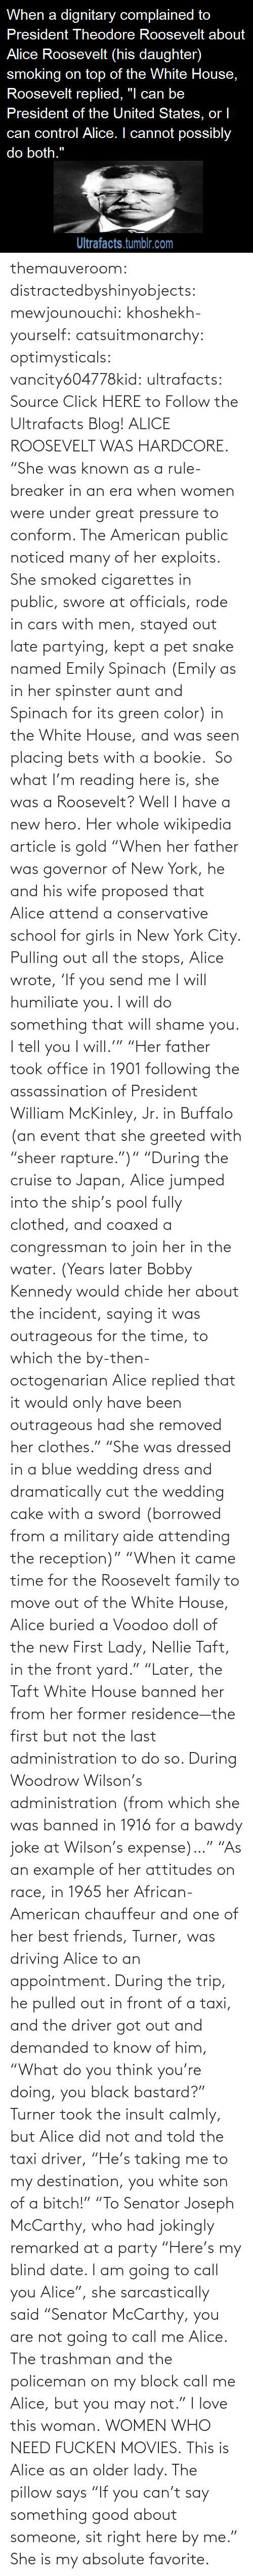 "wikipedia: themauveroom: distractedbyshinyobjects:  mewjounouchi:  khoshekh-yourself:  catsuitmonarchy:  optimysticals:  vancity604778kid:  ultrafacts:     Source Click HERE to Follow the Ultrafacts Blog!     ALICE ROOSEVELT WAS HARDCORE. ""She was known as a rule-breaker in an era when women were under great pressure to conform. The American public noticed many of her exploits. She smoked cigarettes in public, swore at officials, rode in cars with men, stayed out late partying, kept a pet snake named Emily Spinach (Emily as in her spinster aunt and Spinach for its green color) in the White House, and was seen placing bets with a bookie.    So what I'm reading here is, she was a Roosevelt?  Well I have a new hero.  Her whole wikipedia article is gold ""When her father was governor of New York, he and his wife proposed that Alice attend a conservative school for girls in New York City. Pulling out all the stops, Alice wrote, 'If you send me I will humiliate you. I will do something that will shame you. I tell you I will.'"" ""Her father took office in 1901 following the assassination of President William McKinley, Jr. in Buffalo (an event that she greeted with ""sheer rapture."")"" ""During the cruise to Japan, Alice jumped into the ship's pool fully clothed, and coaxed a congressman to join her in the water. (Years later Bobby Kennedy would chide her about the incident, saying it was outrageous for the time, to which the by-then-octogenarian Alice replied that it would only have been outrageous had she removed her clothes."" ""She was dressed in a blue wedding dress and dramatically cut the wedding cake with a sword (borrowed from a military aide attending the reception)"" ""When it came time for the Roosevelt family to move out of the White House, Alice buried a Voodoo doll of the new First Lady, Nellie Taft, in the front yard."" ""Later, the Taft White House banned her from her former residence—the first but not the last administration to do so. During Woodrow Wilson's administration (from which she was banned in 1916 for a bawdy joke at Wilson's expense)…"" ""As an example of her attitudes on race, in 1965 her African-American chauffeur and one of her best friends, Turner, was driving Alice to an appointment. During the trip, he pulled out in front of a taxi, and the driver got out and demanded to know of him, ""What do you think you're doing, you black bastard?"" Turner took the insult calmly, but Alice did not and told the taxi driver, ""He's taking me to my destination, you white son of a bitch!"" ""To Senator Joseph McCarthy, who had jokingly remarked at a party ""Here's my blind date. I am going to call you Alice"", she sarcastically said ""Senator McCarthy, you are not going to call me Alice. The trashman and the policeman on my block call me Alice, but you may not.""  I love this woman.  WOMEN WHO NEED FUCKEN MOVIES.   This is Alice as an older lady. The pillow says ""If you can't say something good about someone, sit right here by me.""  She is my absolute favorite."